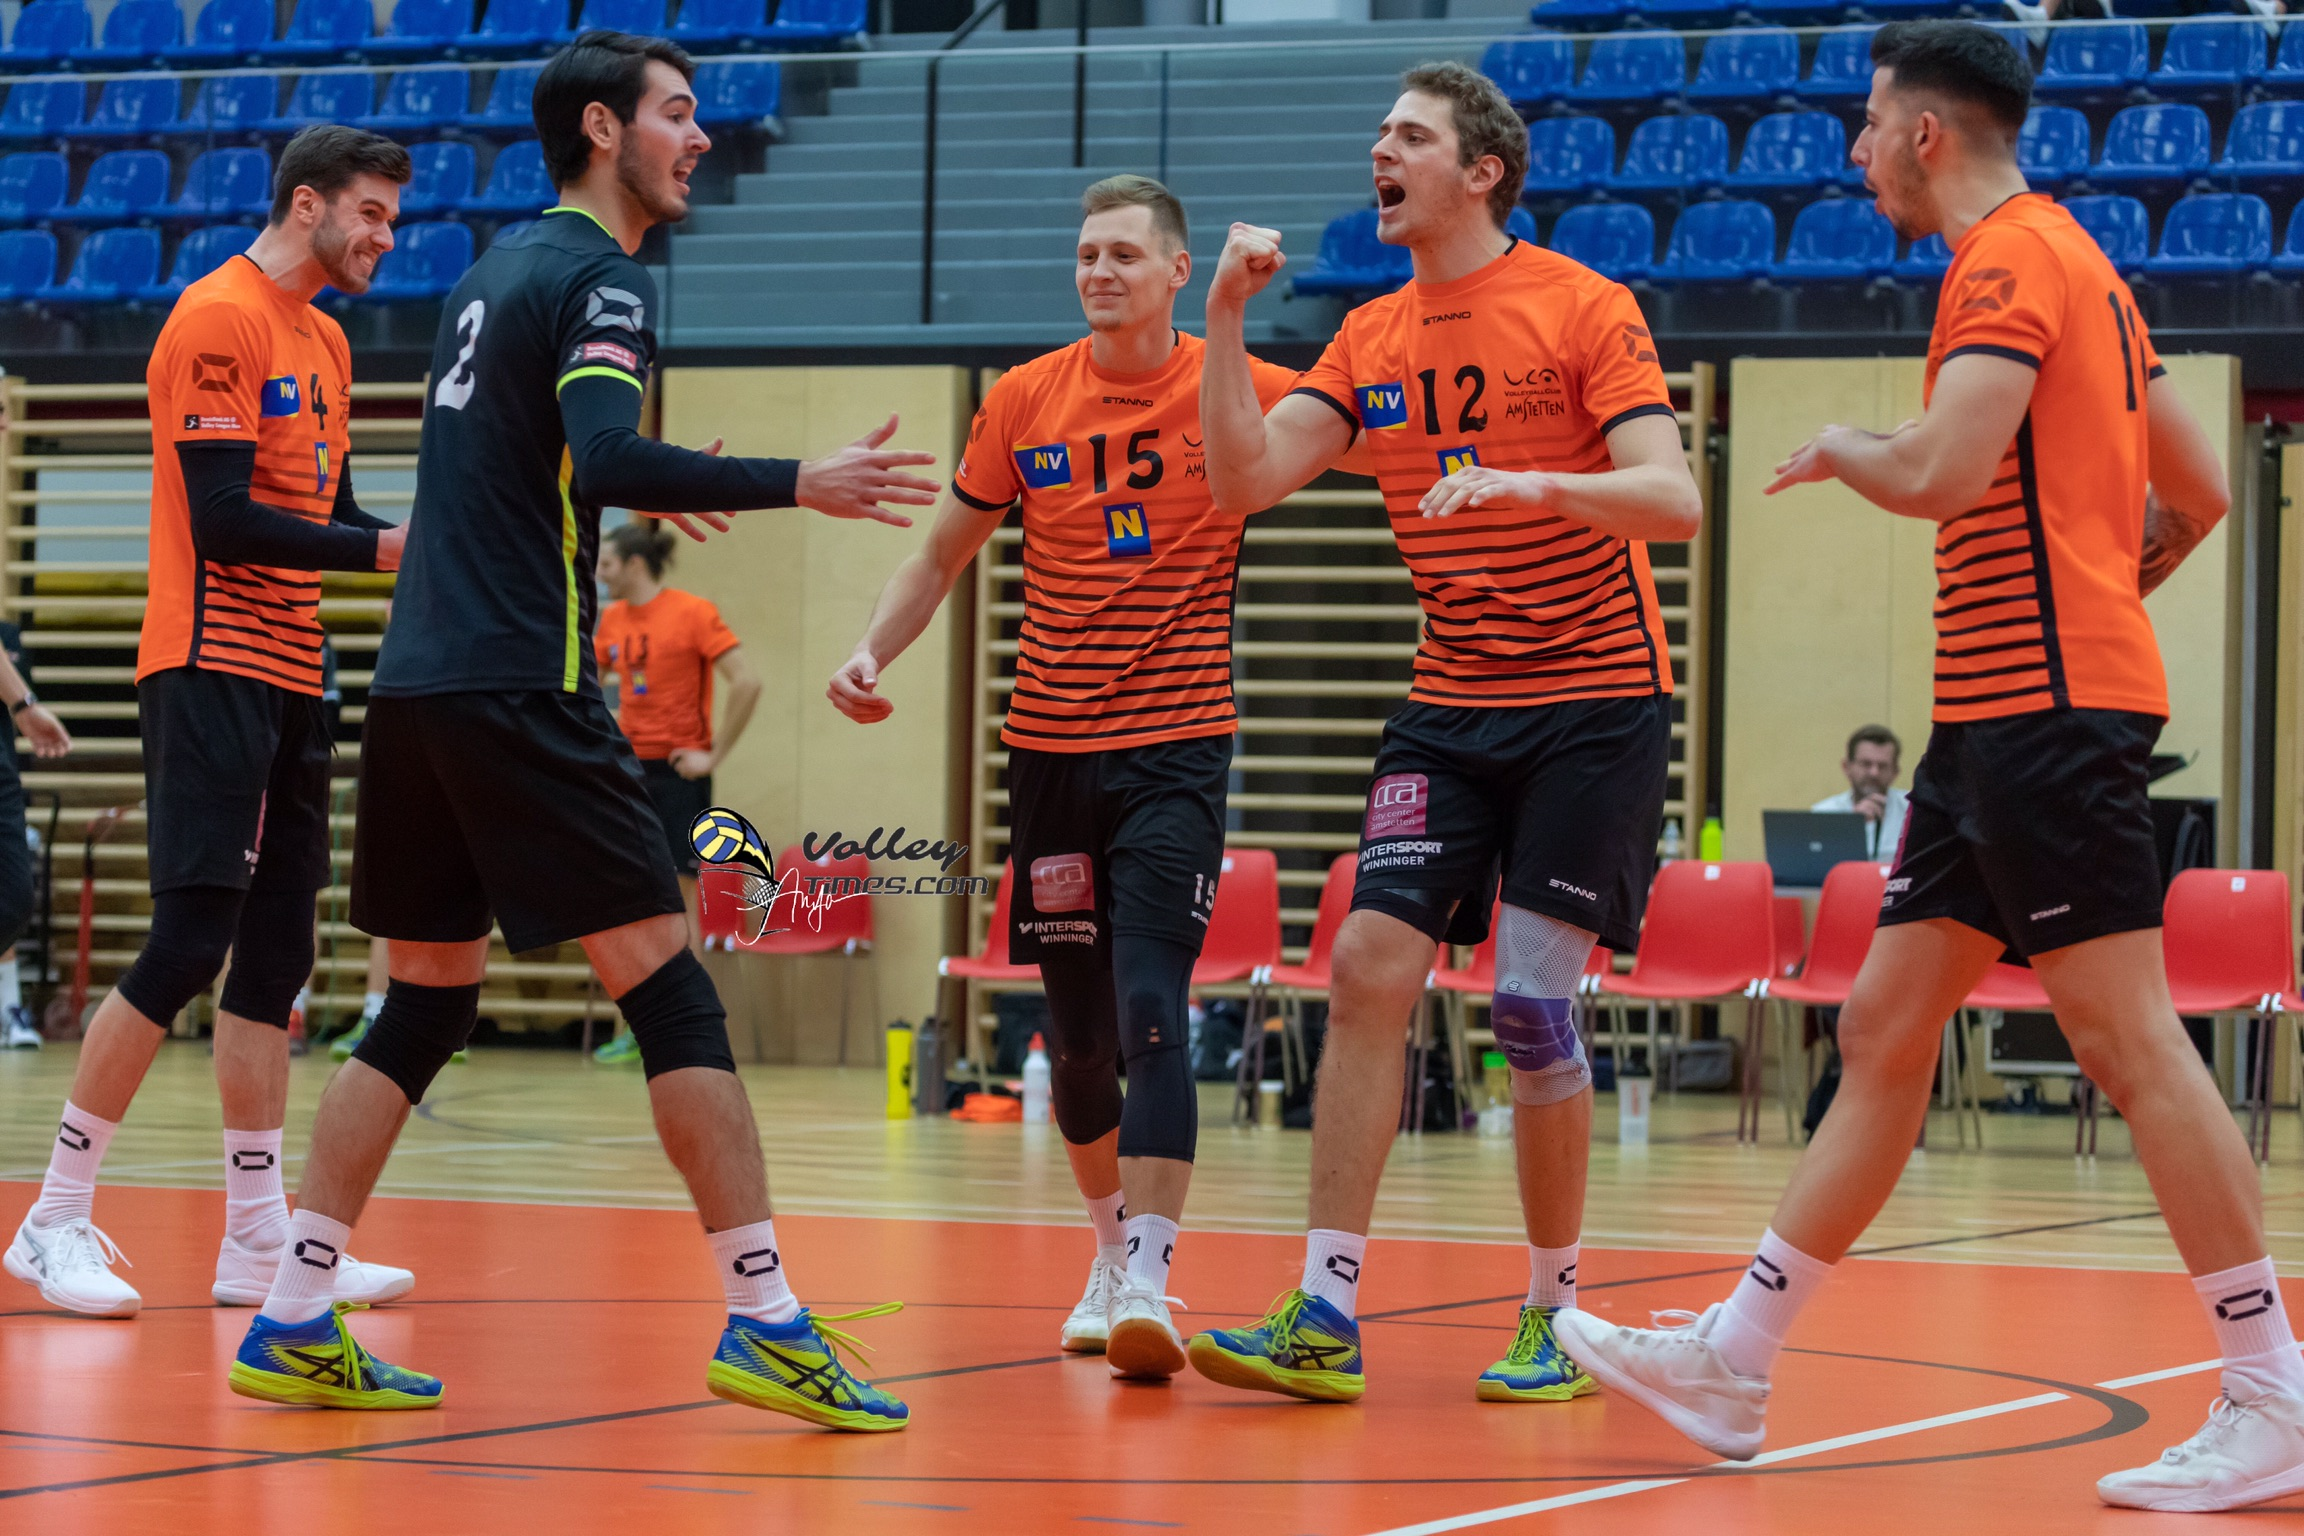 Austria: Amstetten starts with a victory vs. Klagenfurt the lower round